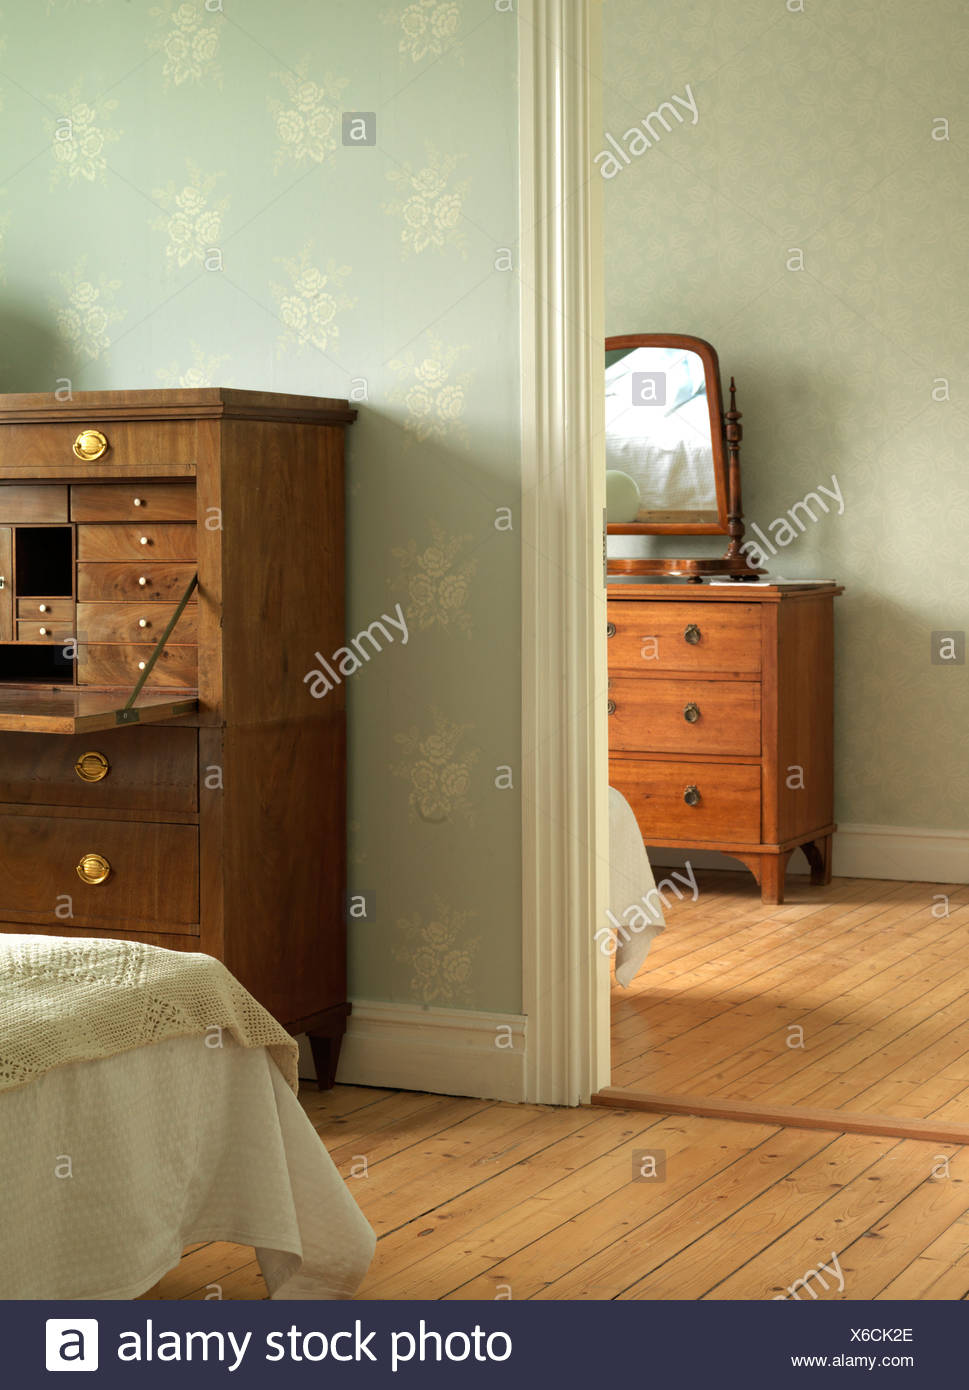 Two rooms. - Stock Image